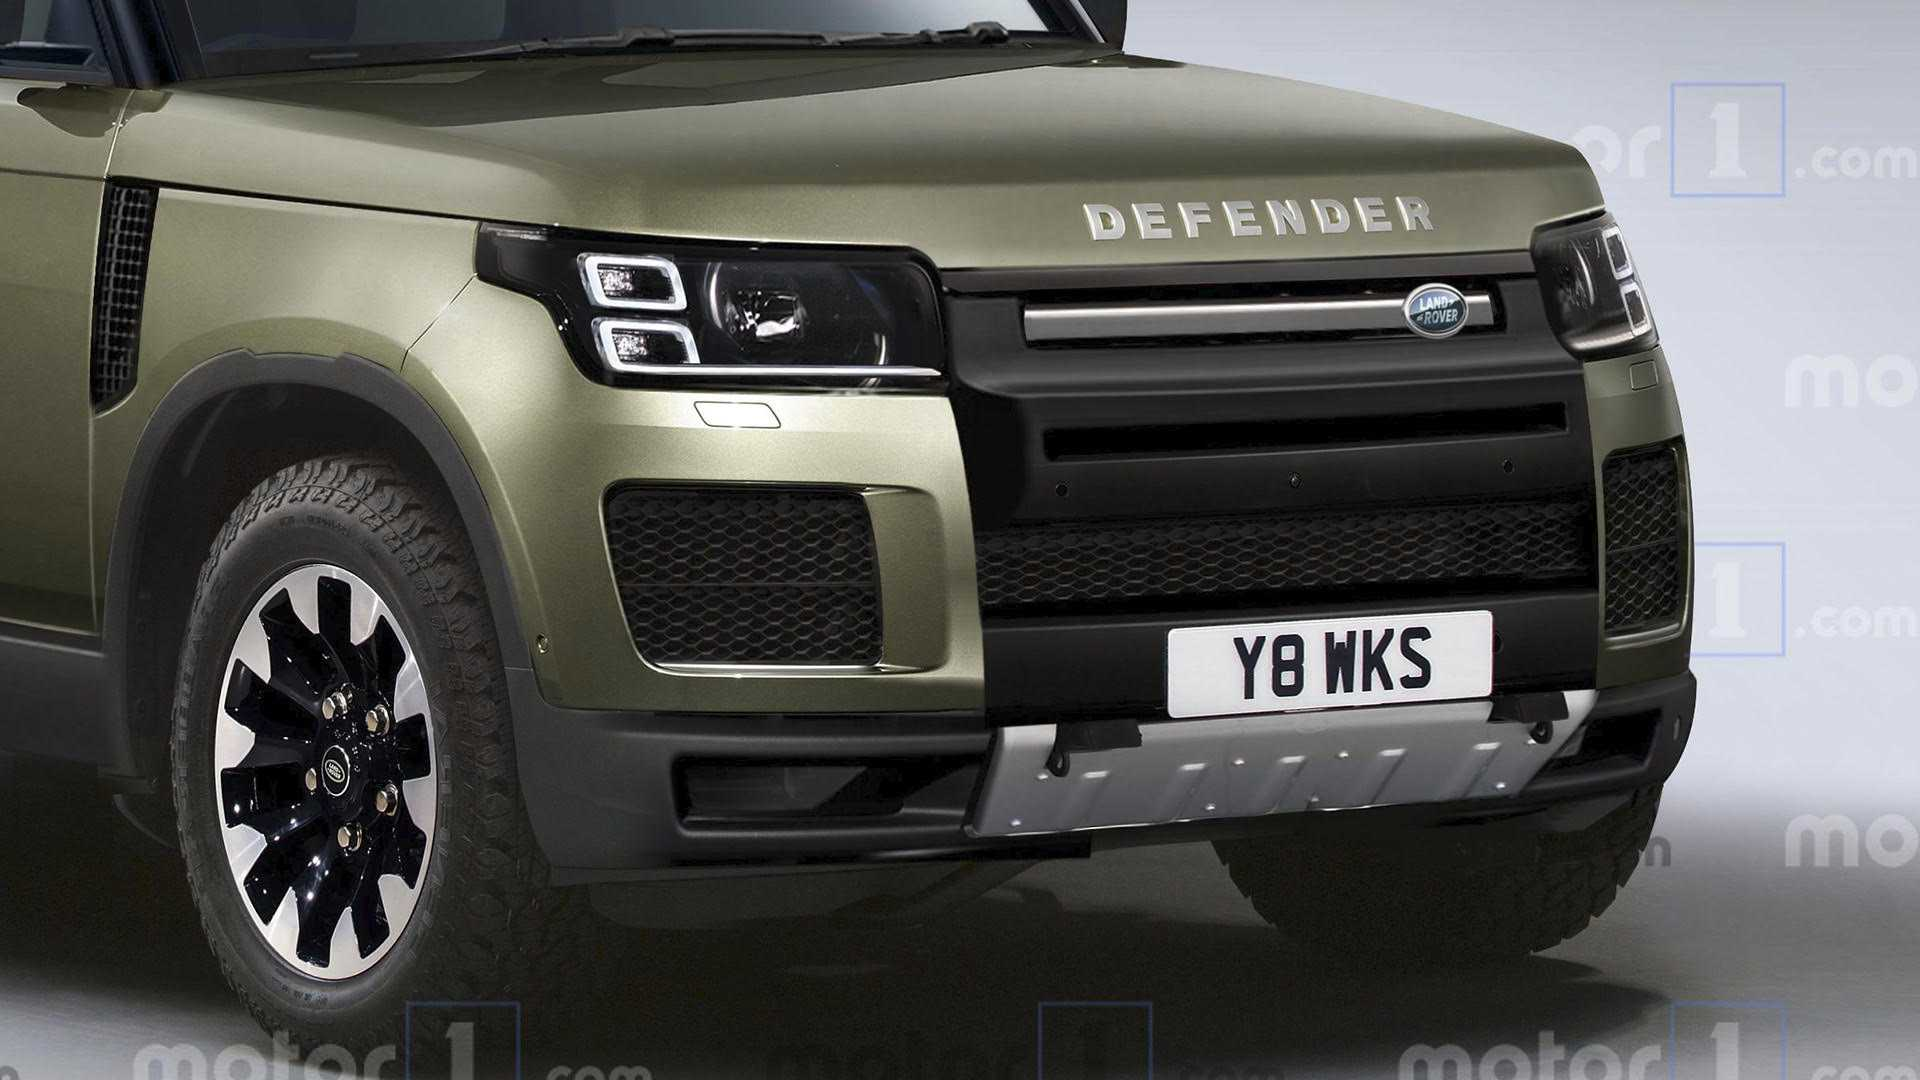 58 The 2020 Land Rover Defender Concept